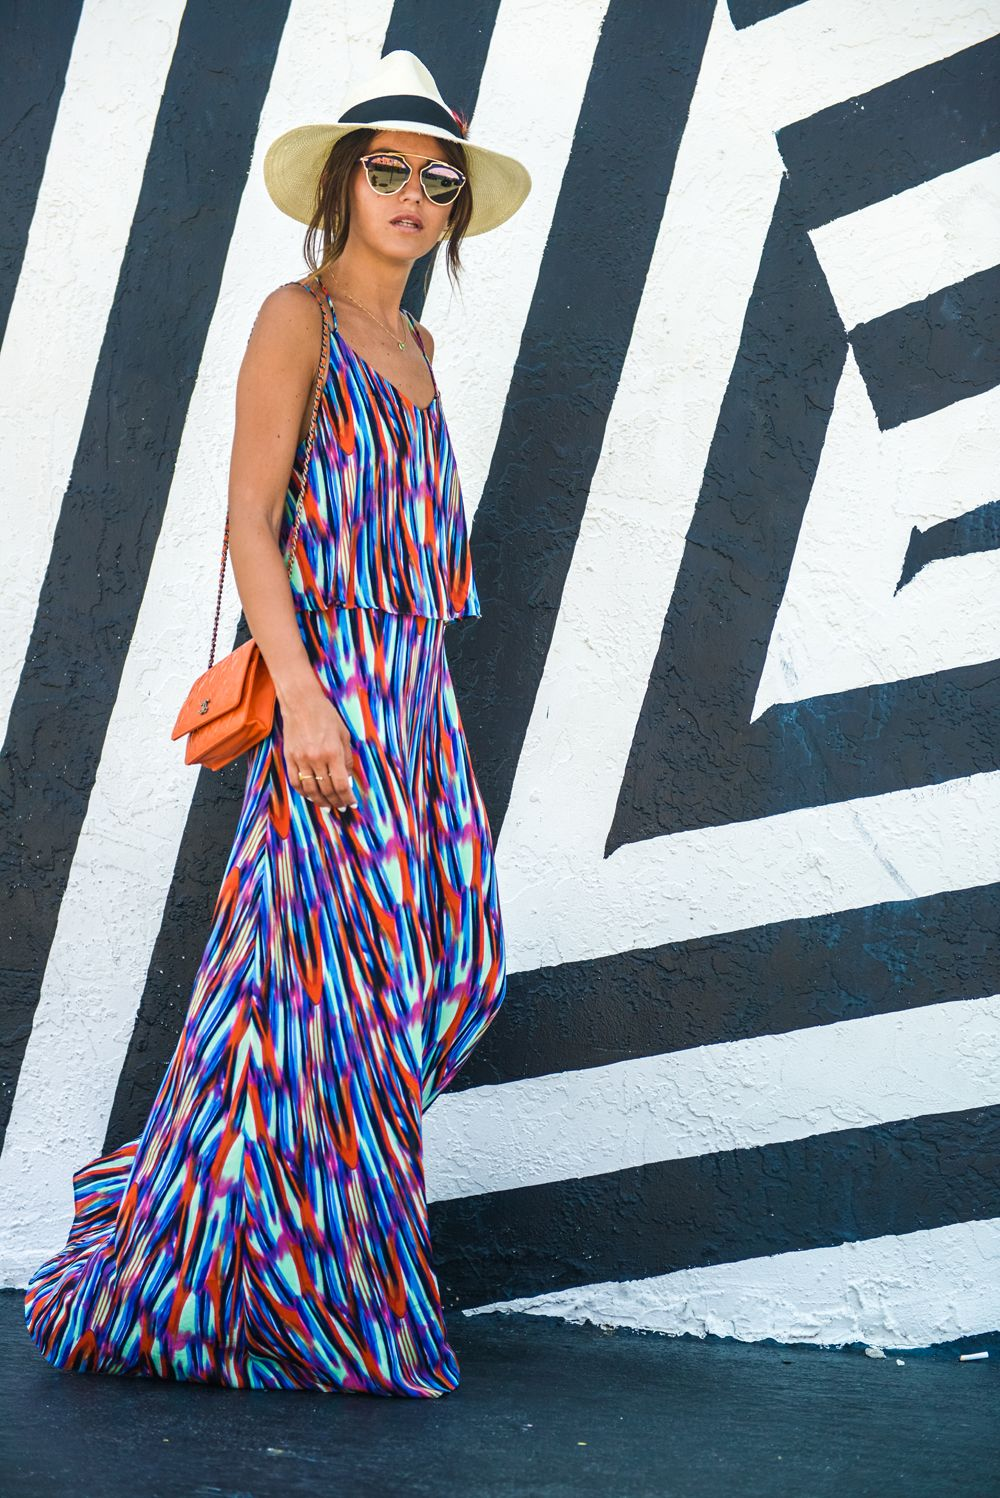 Wynwood walls lovely pepa by alexandra this dress is so much fun